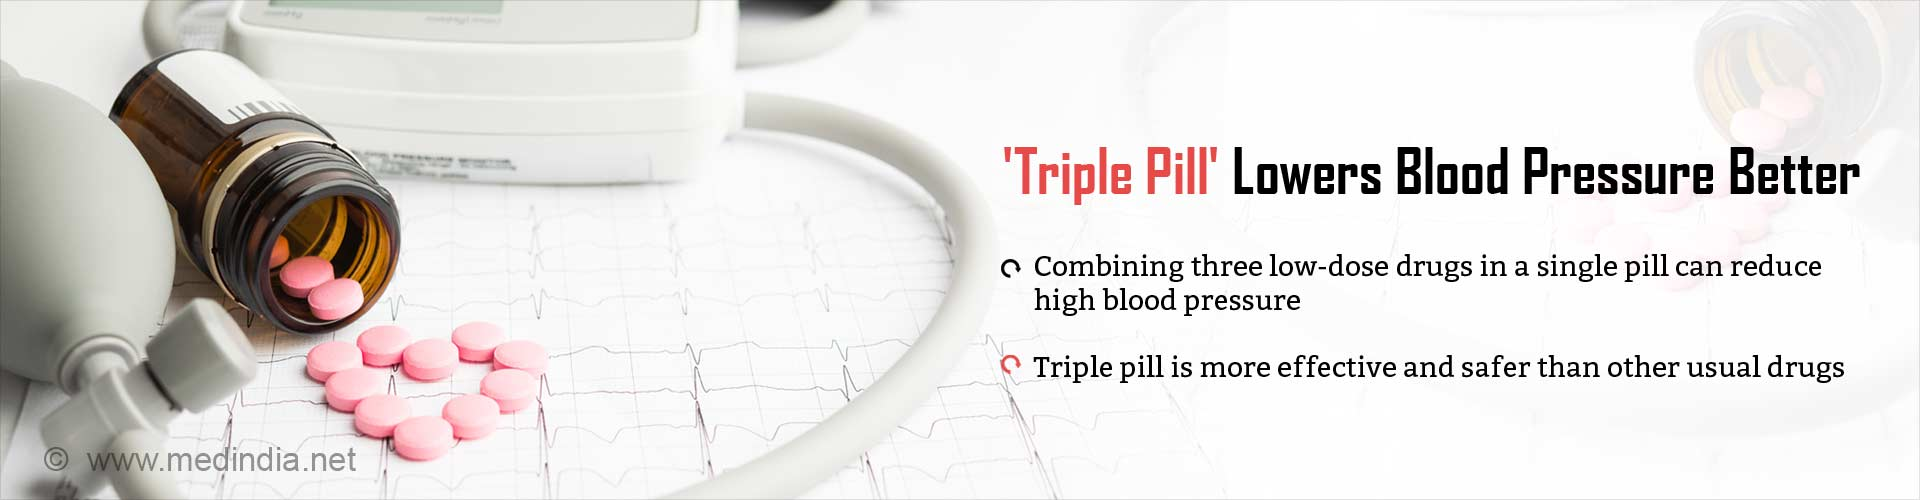 Low-dose 'Triple Pill' Helps Lower Blood Pressure Better